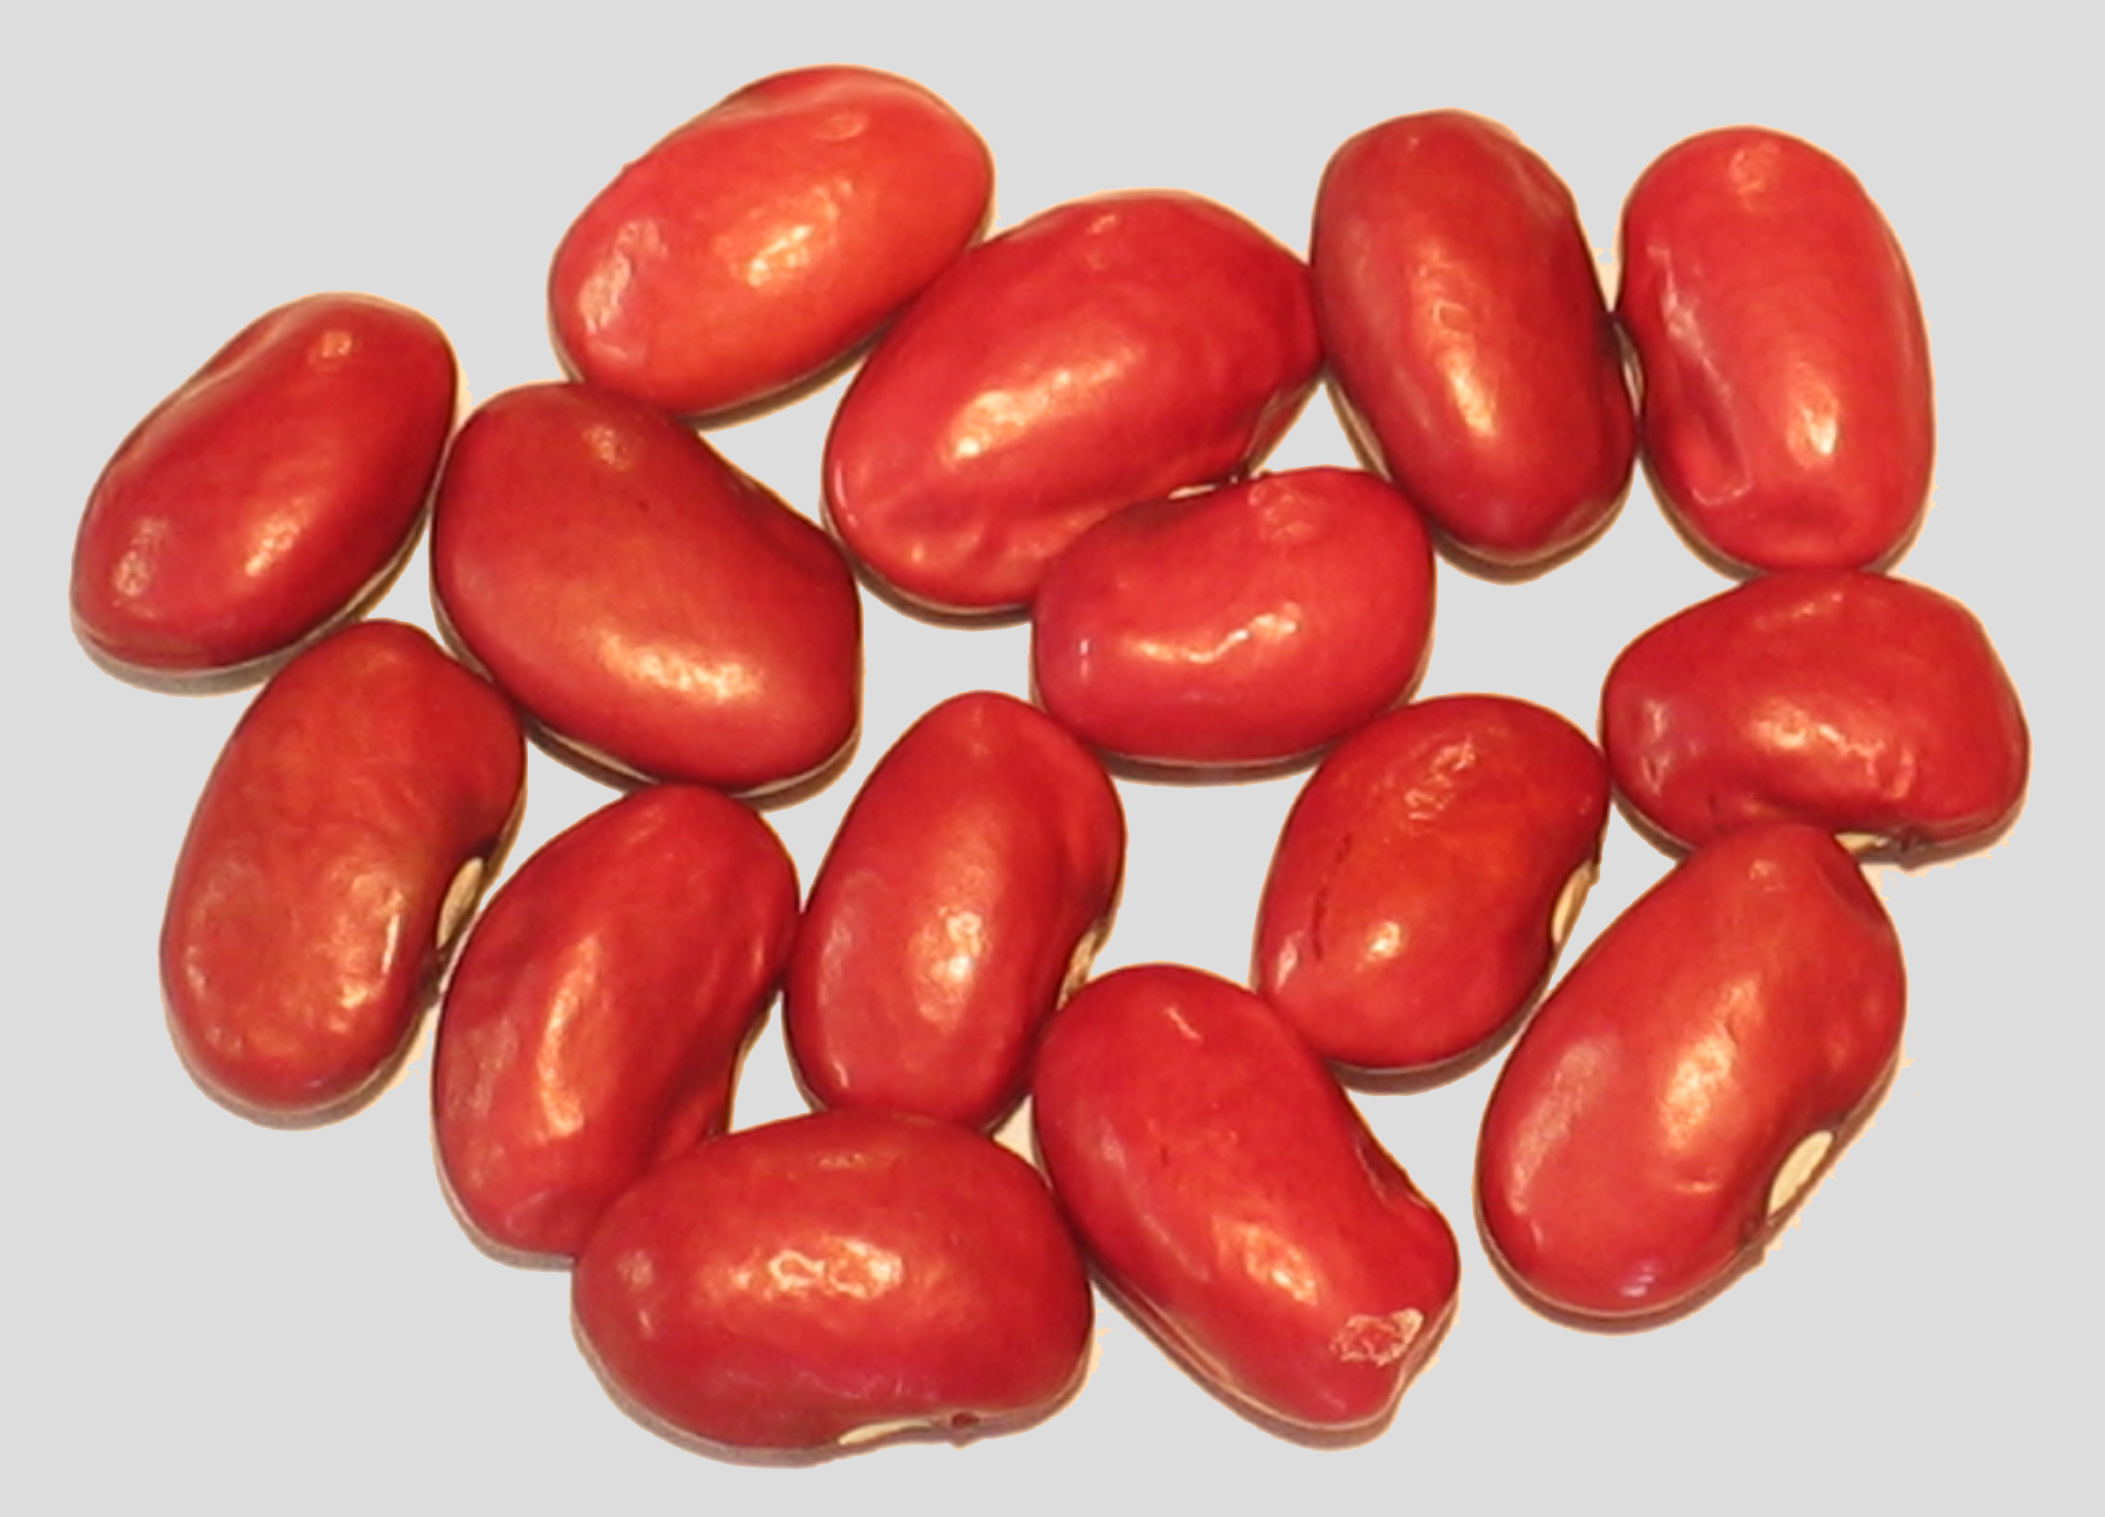 image of Hidatsa Red beans